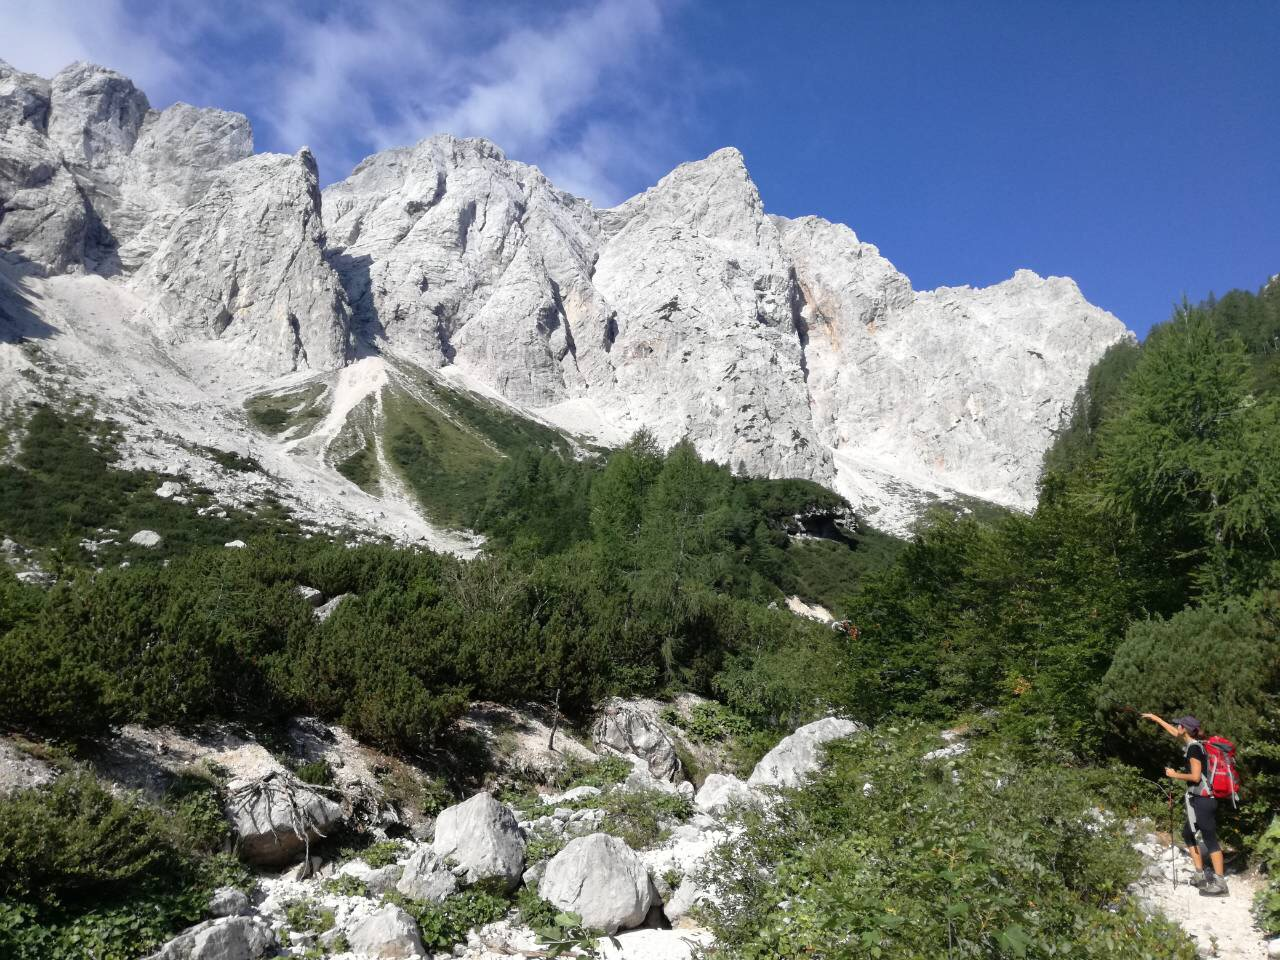 Hiking in the Kamnik-Savinja Alps